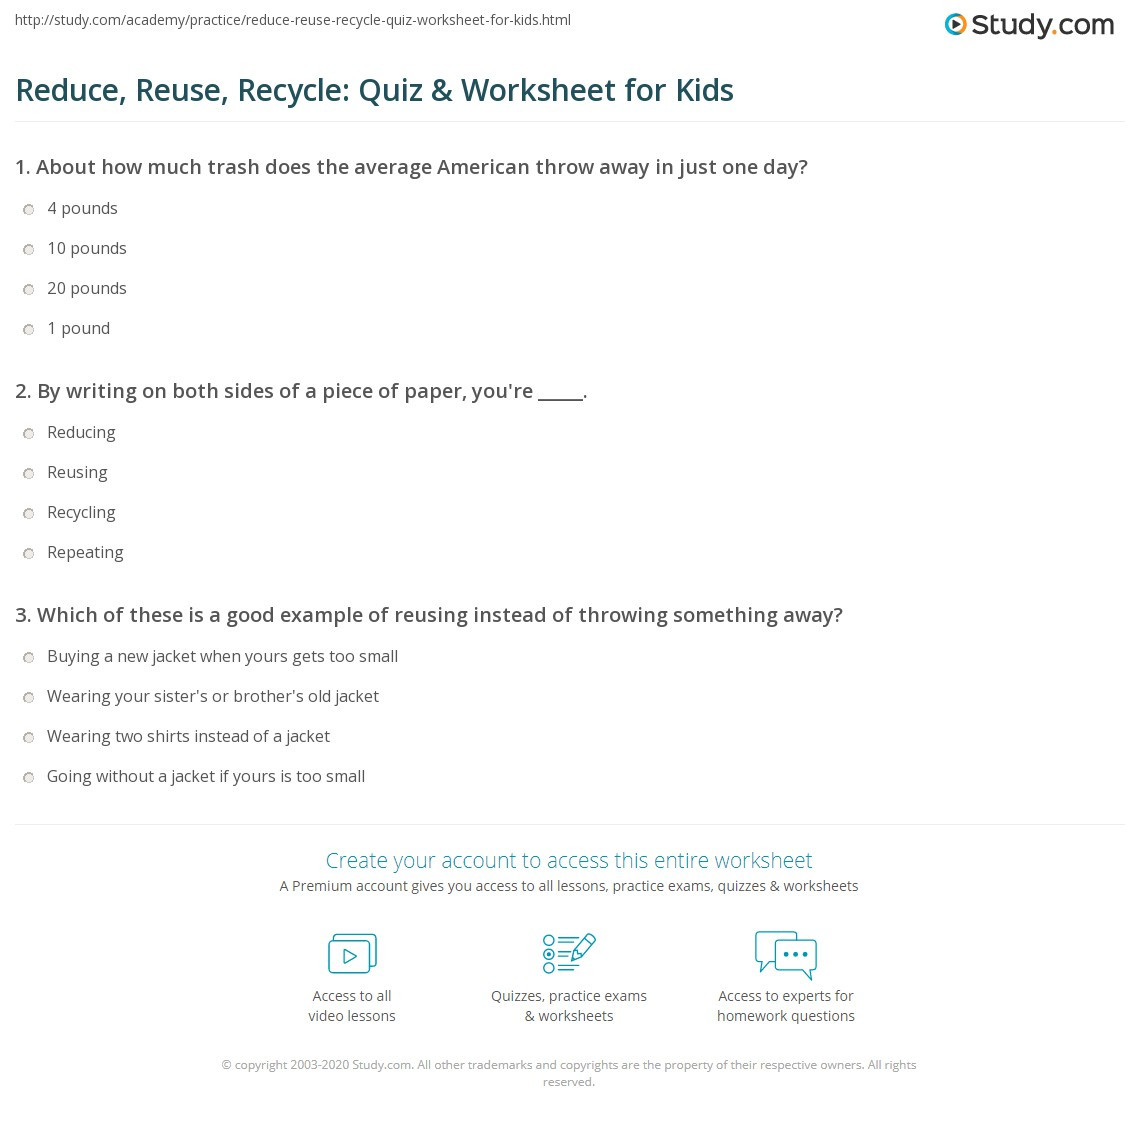 Recycling Worksheets for Middle School Reduce Reuse Recycle Quiz & Worksheet for Kids